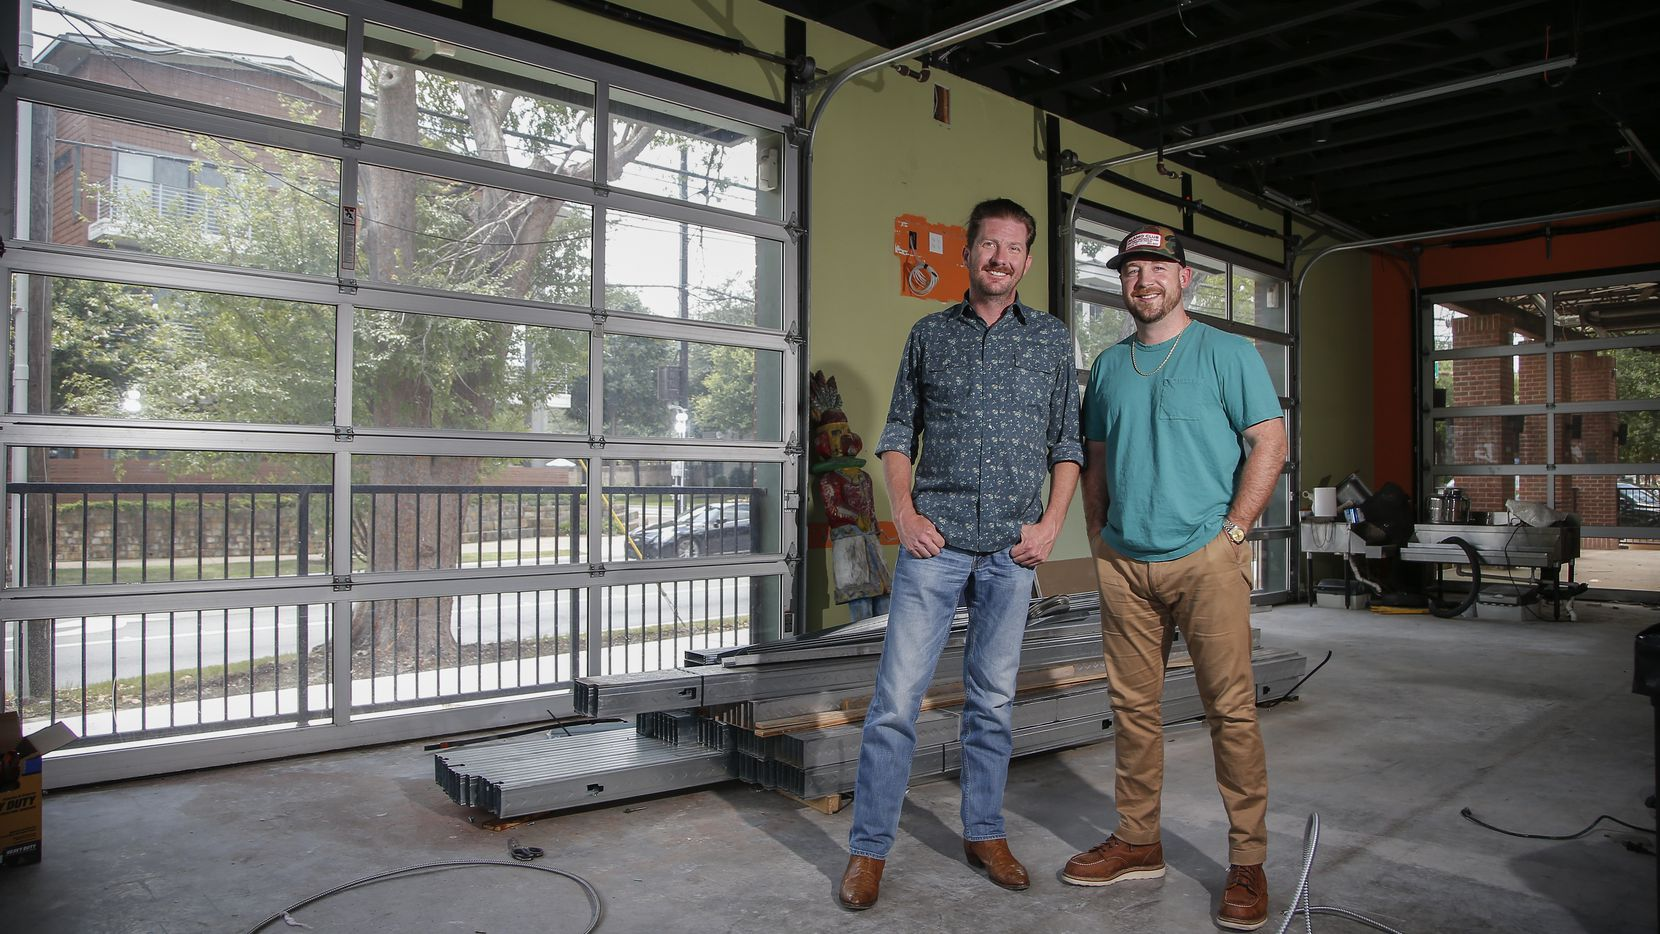 Garrett Mayer, left, and Austin Rodgers are transforming a former Jake's Burgers on Henderson Avenue into a restaurant/bar named Mayer's Garden. They're having a lot of fun combing through the 140-year-old bar's history.